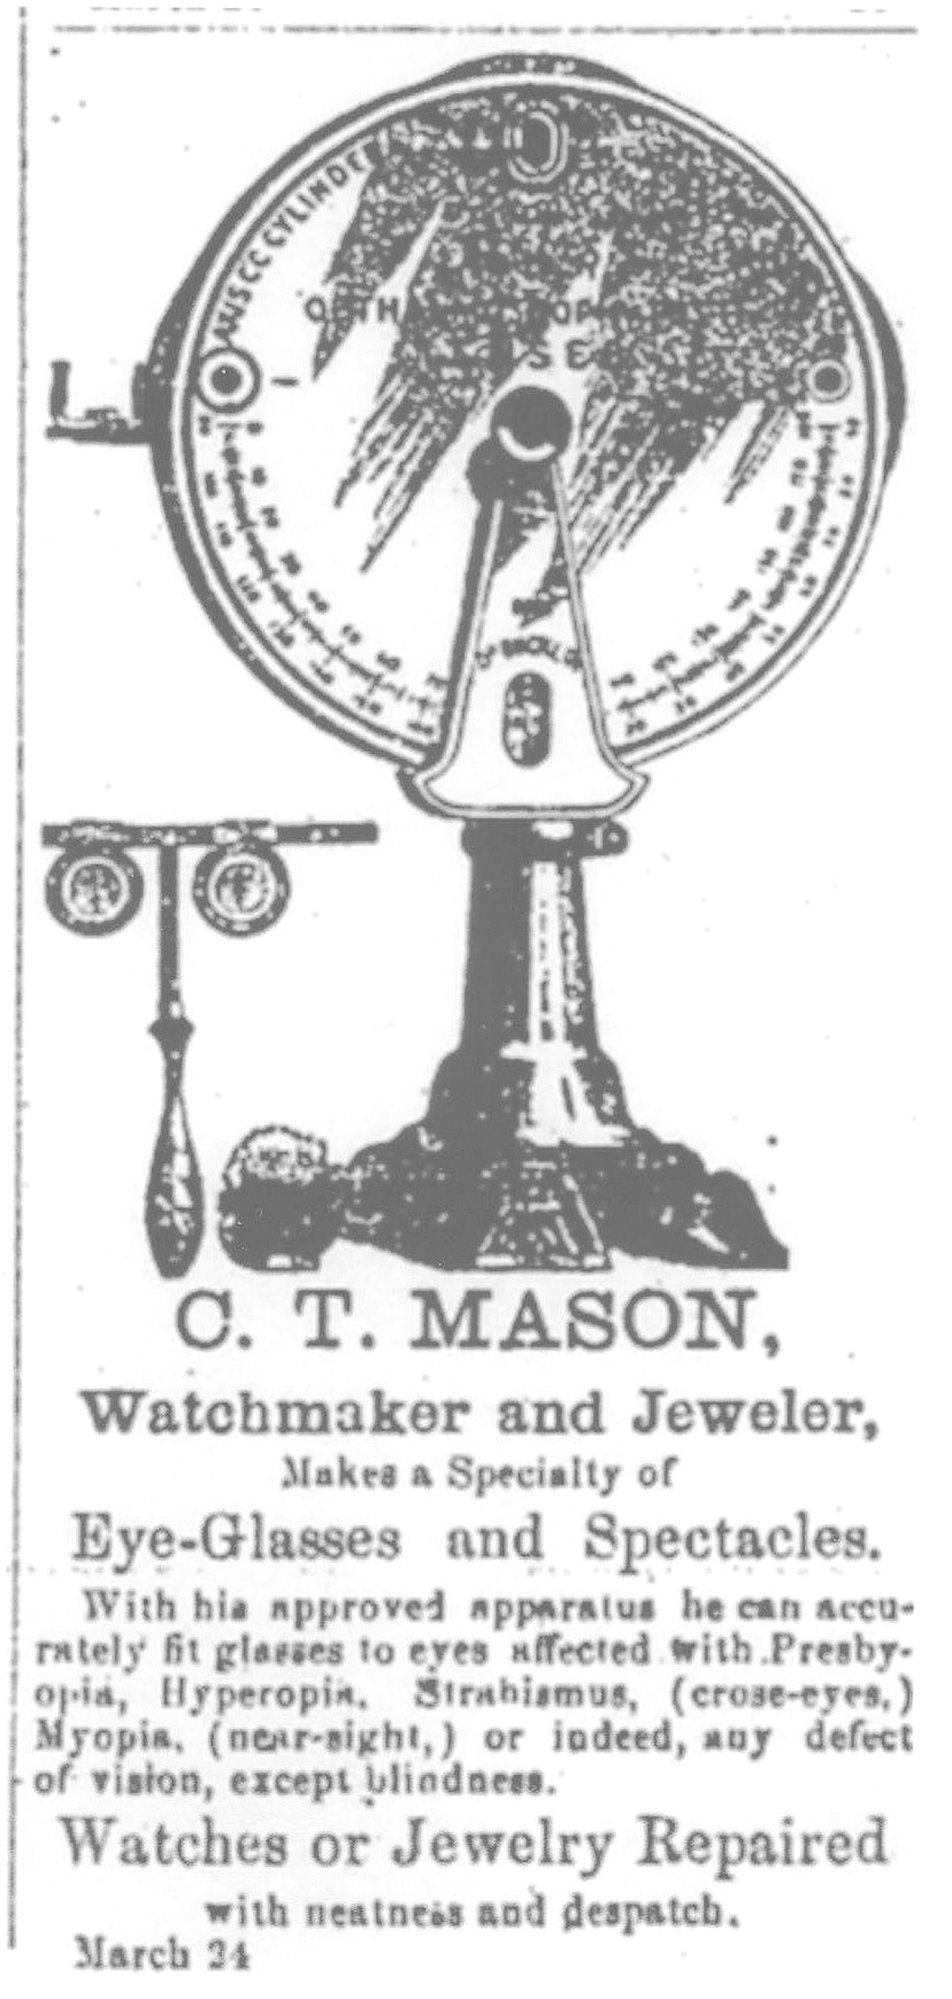 C. T. Mason Sr. was a renowned inventor and watchmaker whose store was in the block from Dugan to Liberty street.